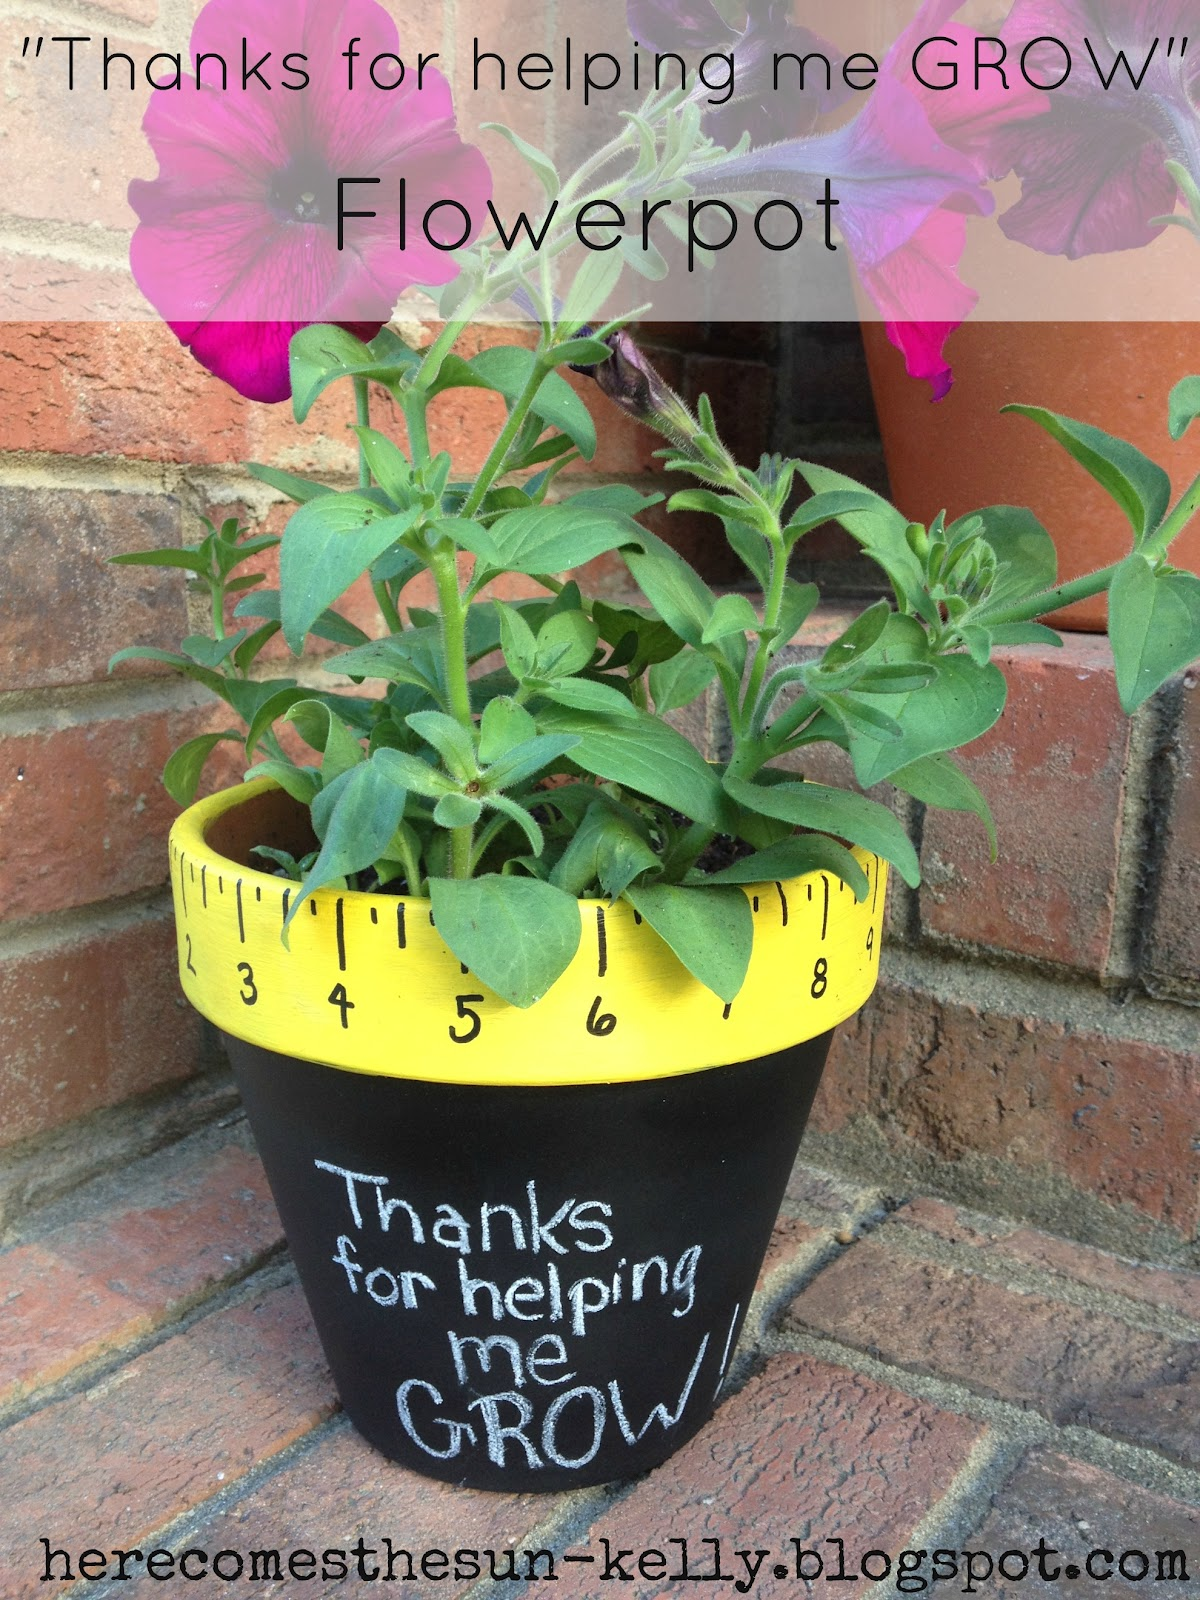 thanks for helping me grow flowerpot here comes the sun